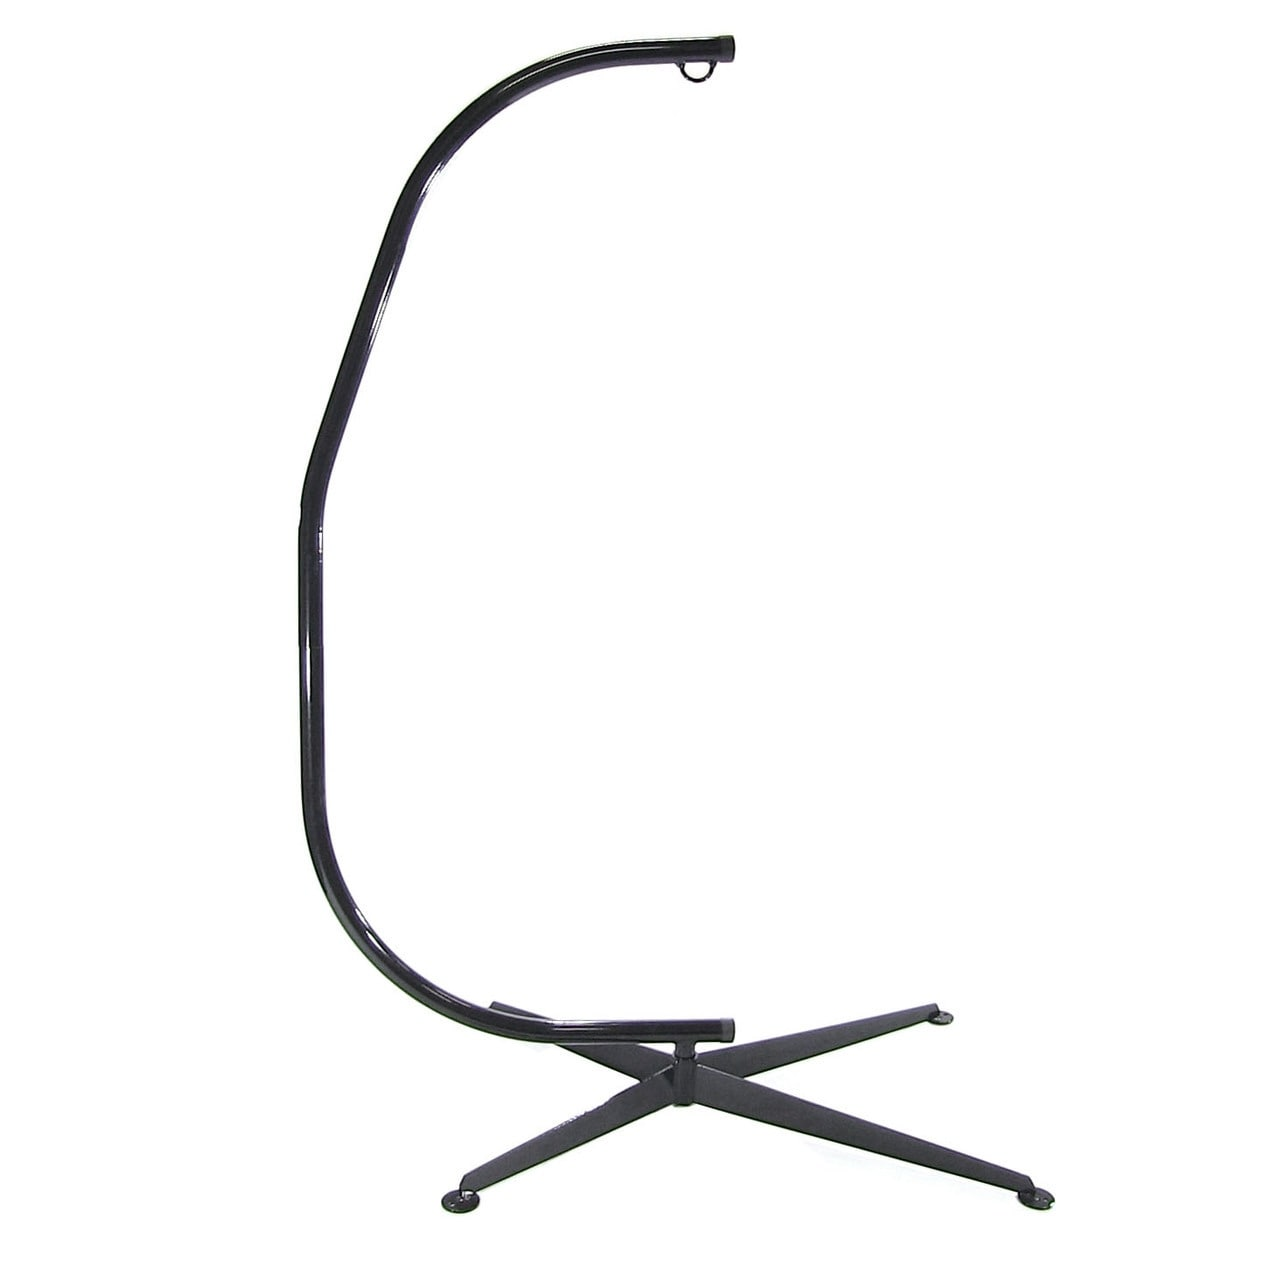 Sunnydaze Durable C-Stand for Hanging Hammock Chairs